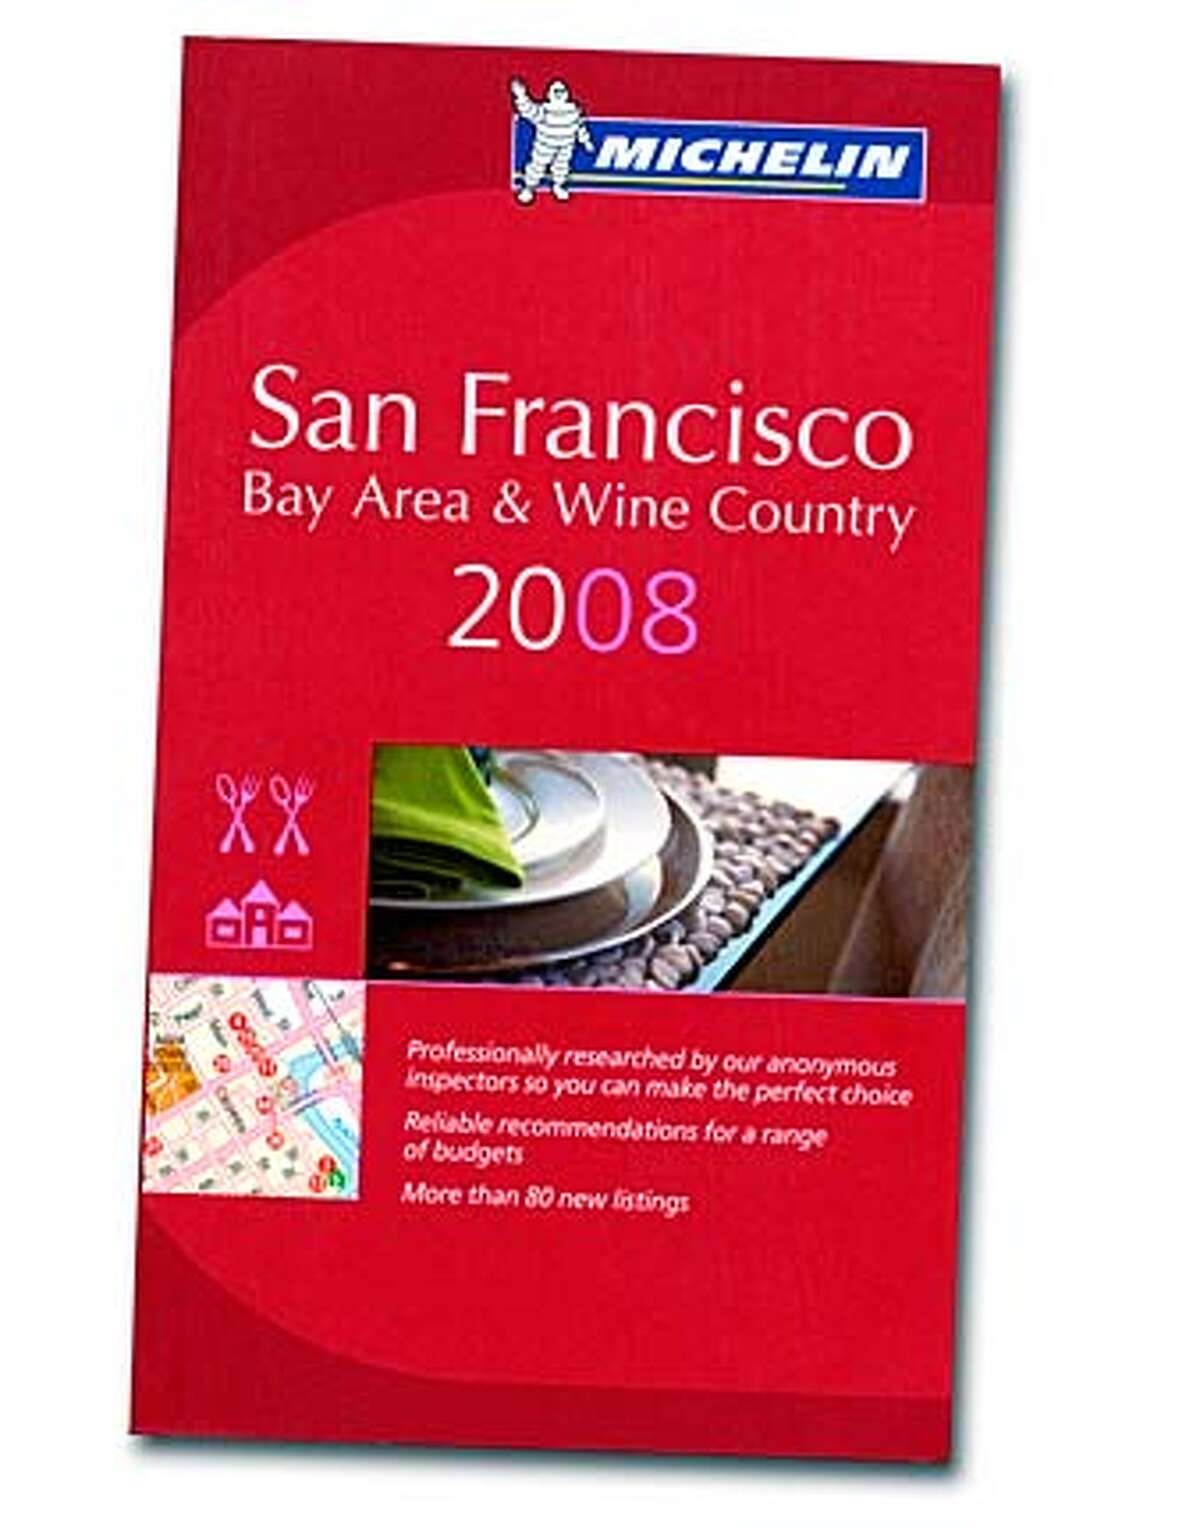 Cover of Michelin San Francisco Bay Area & Wine Country 2008 book. Scanned image